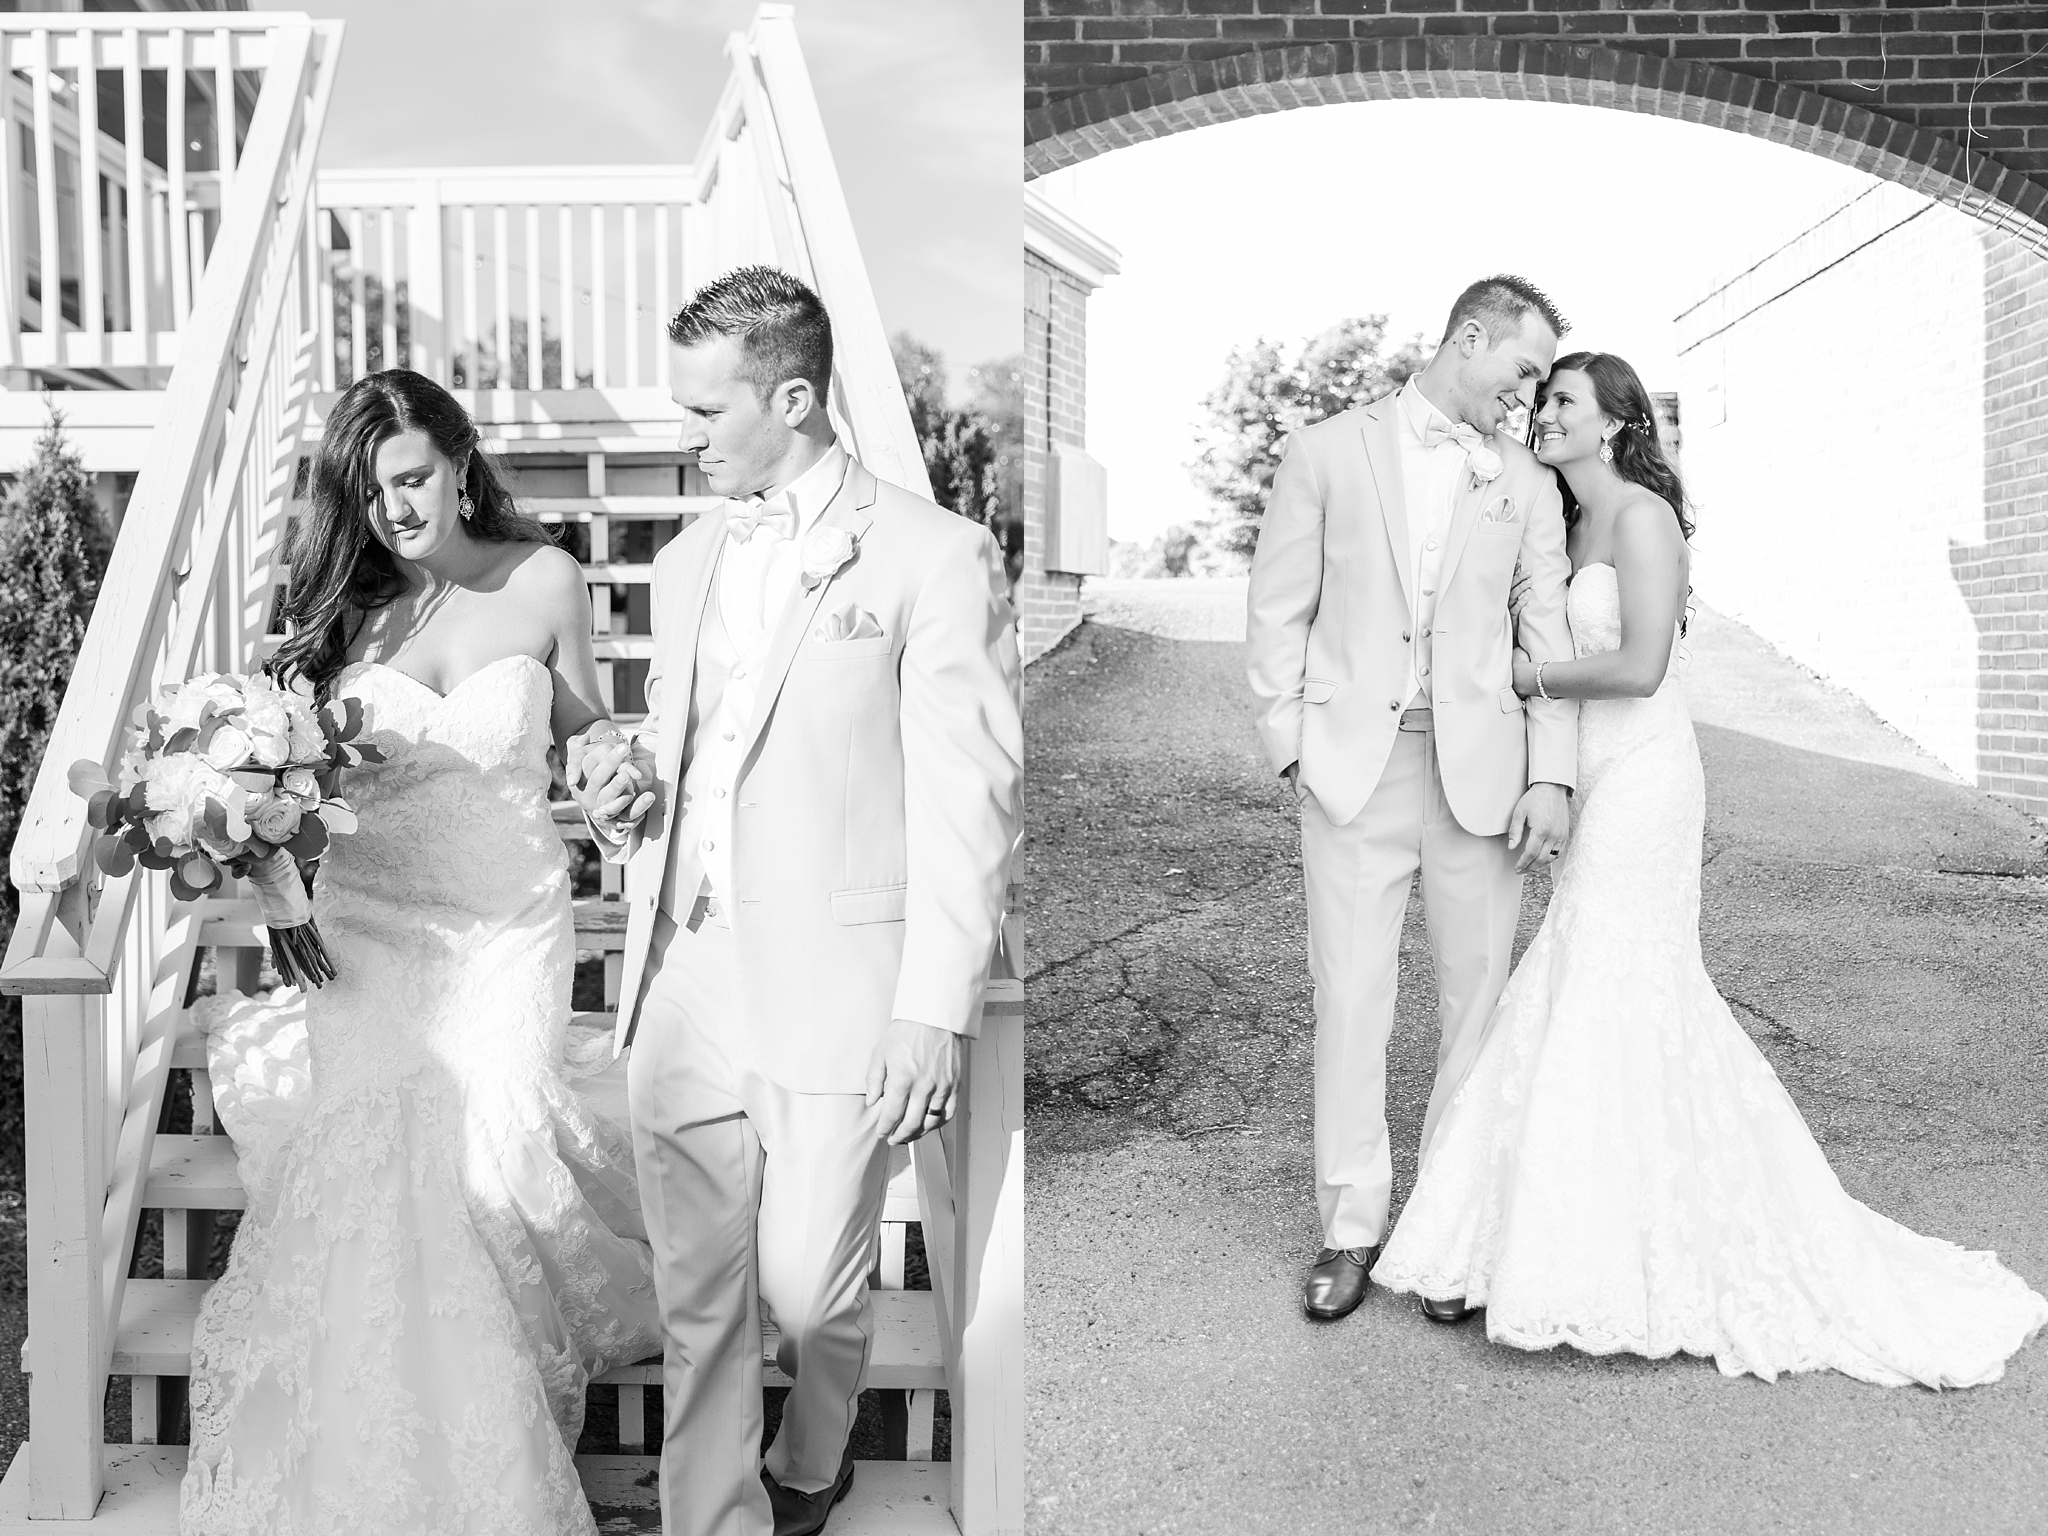 candid-timeless-wedding-photos-at-the-captains-club-in-grand-blanc-michigan-by-courtney-carolyn-photography_0056.jpg